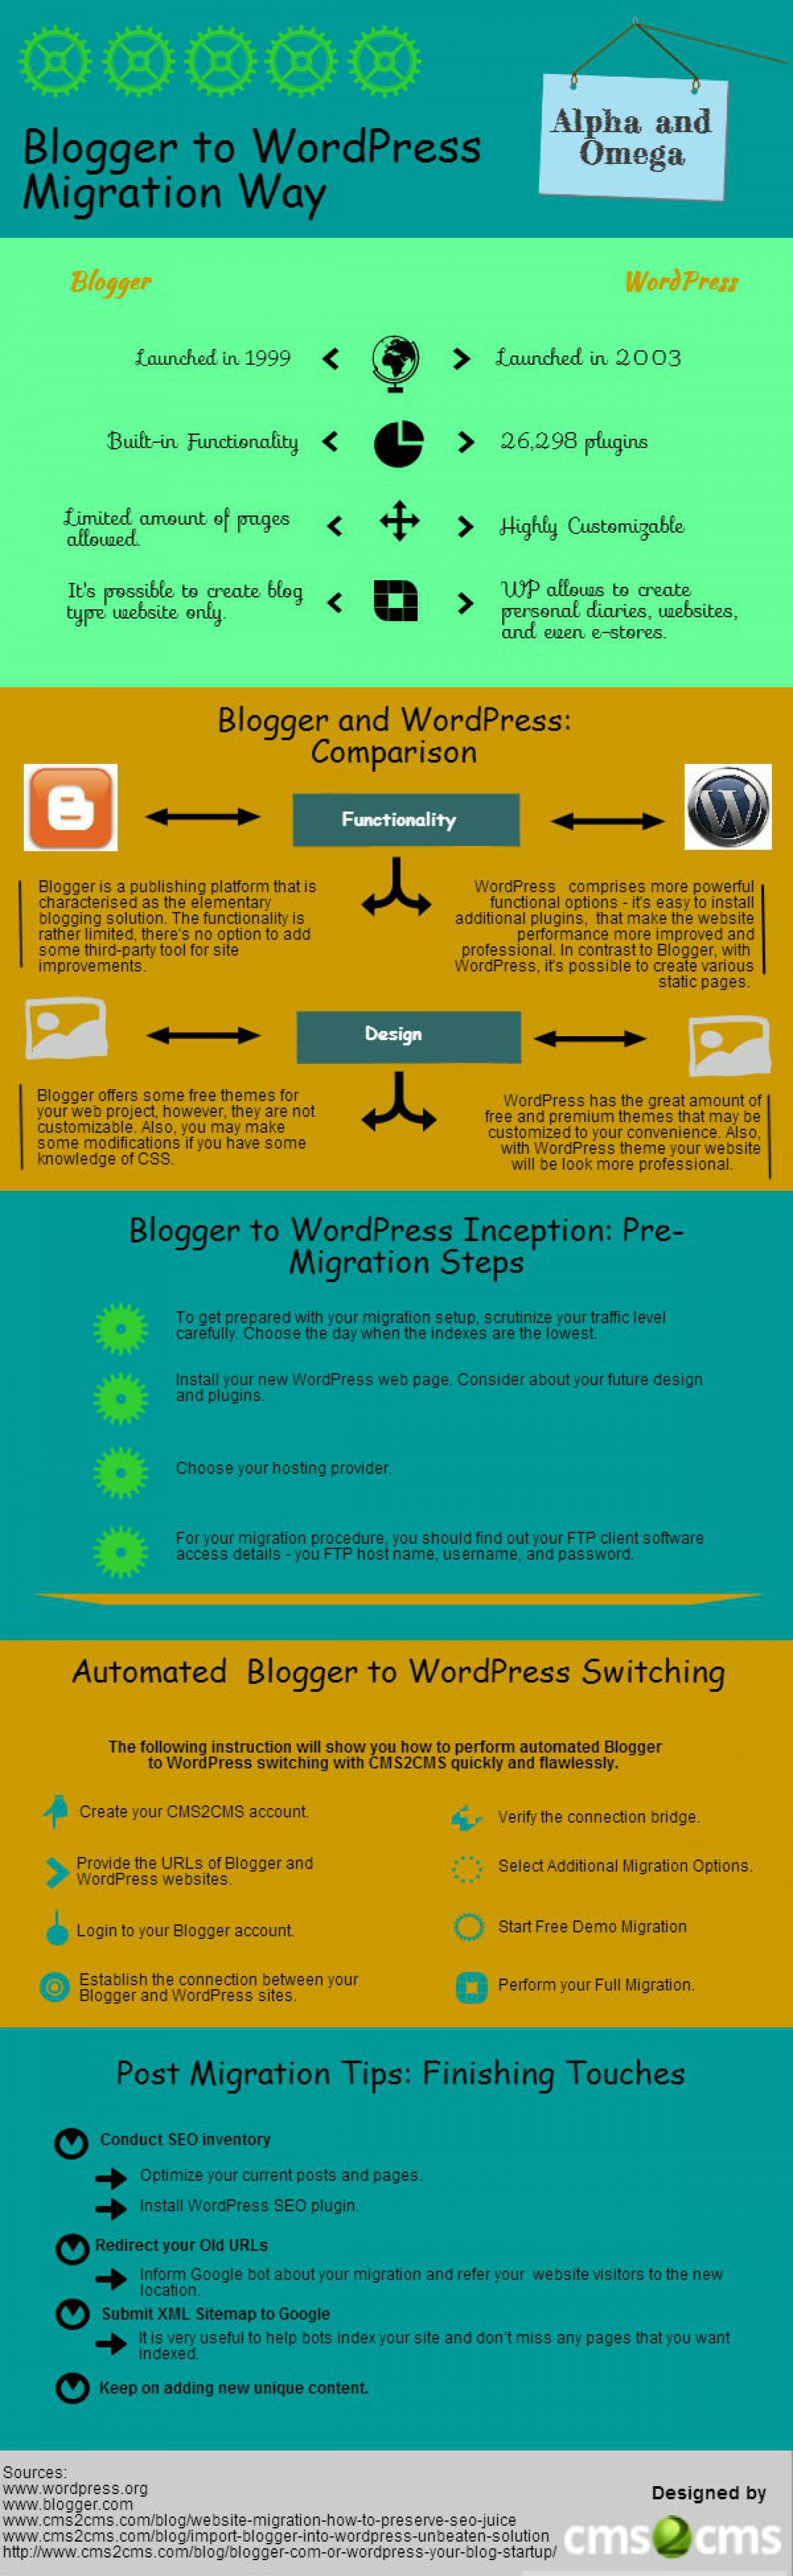 Alpha nad Omega: Blogger to WordPress Migration Infographic